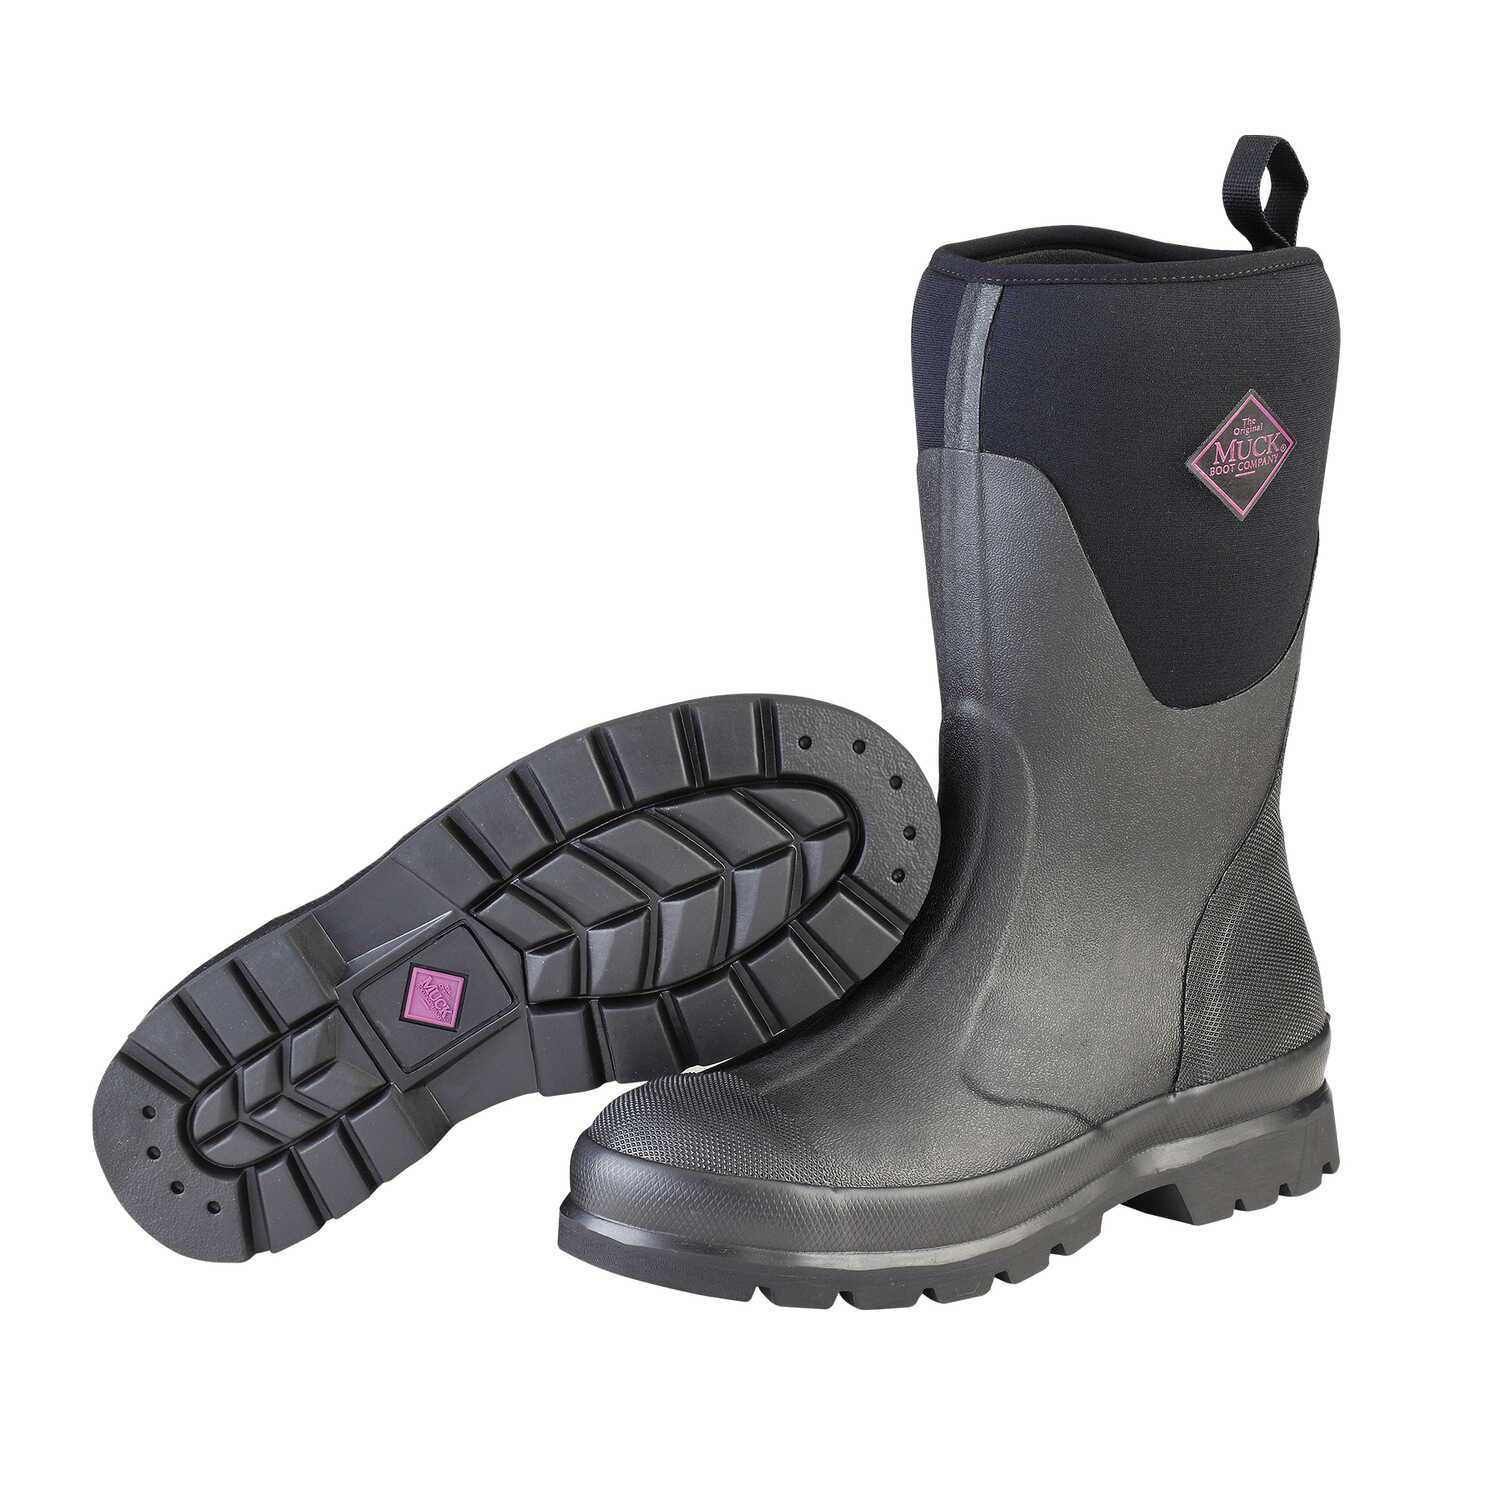 The Original Muck Boot Company  Chore Mid  Women's  Boots  11 US  Black